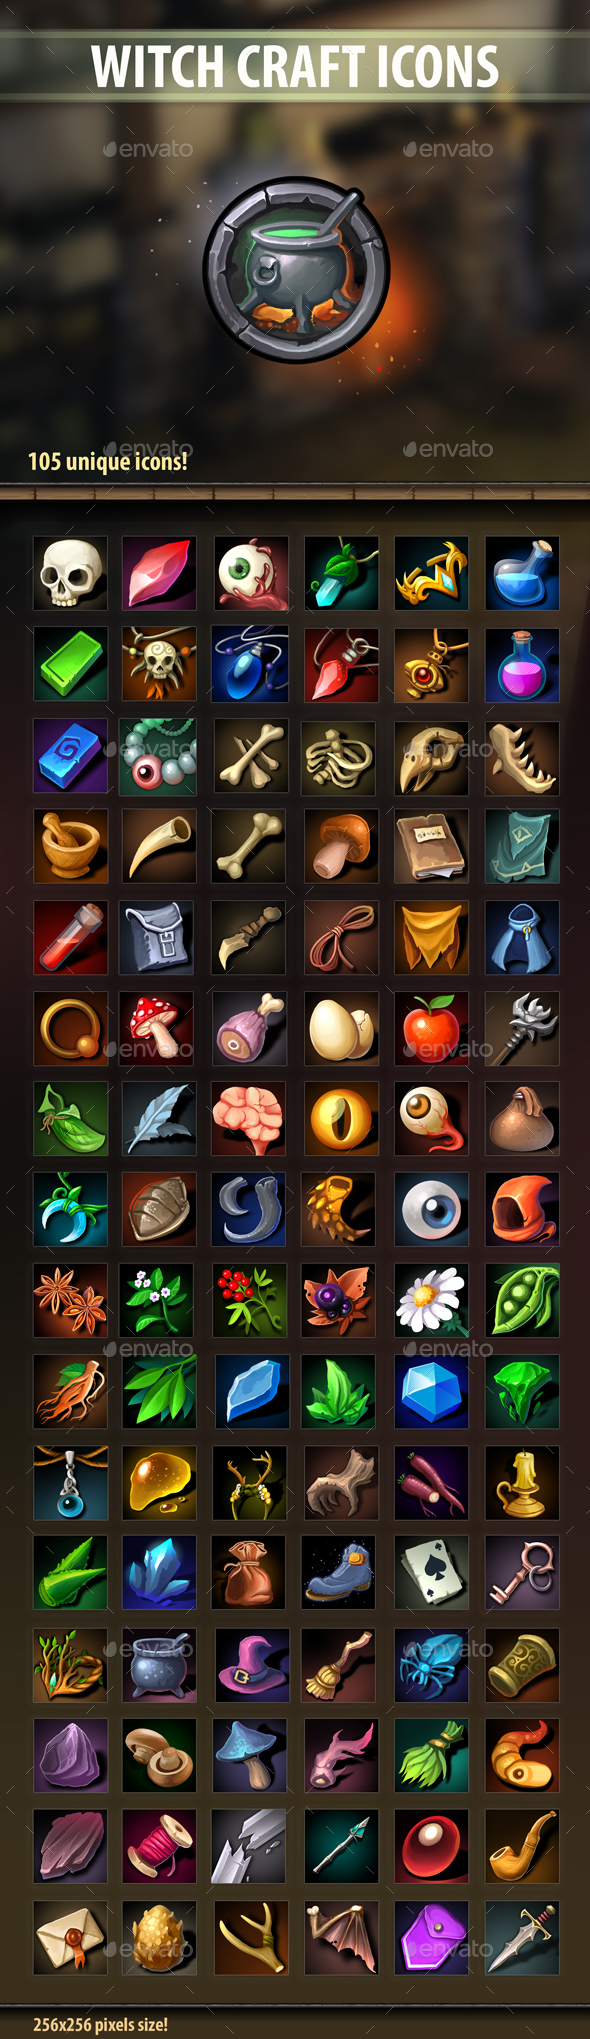 Witch Craft Icons - Miscellaneous Game Assets